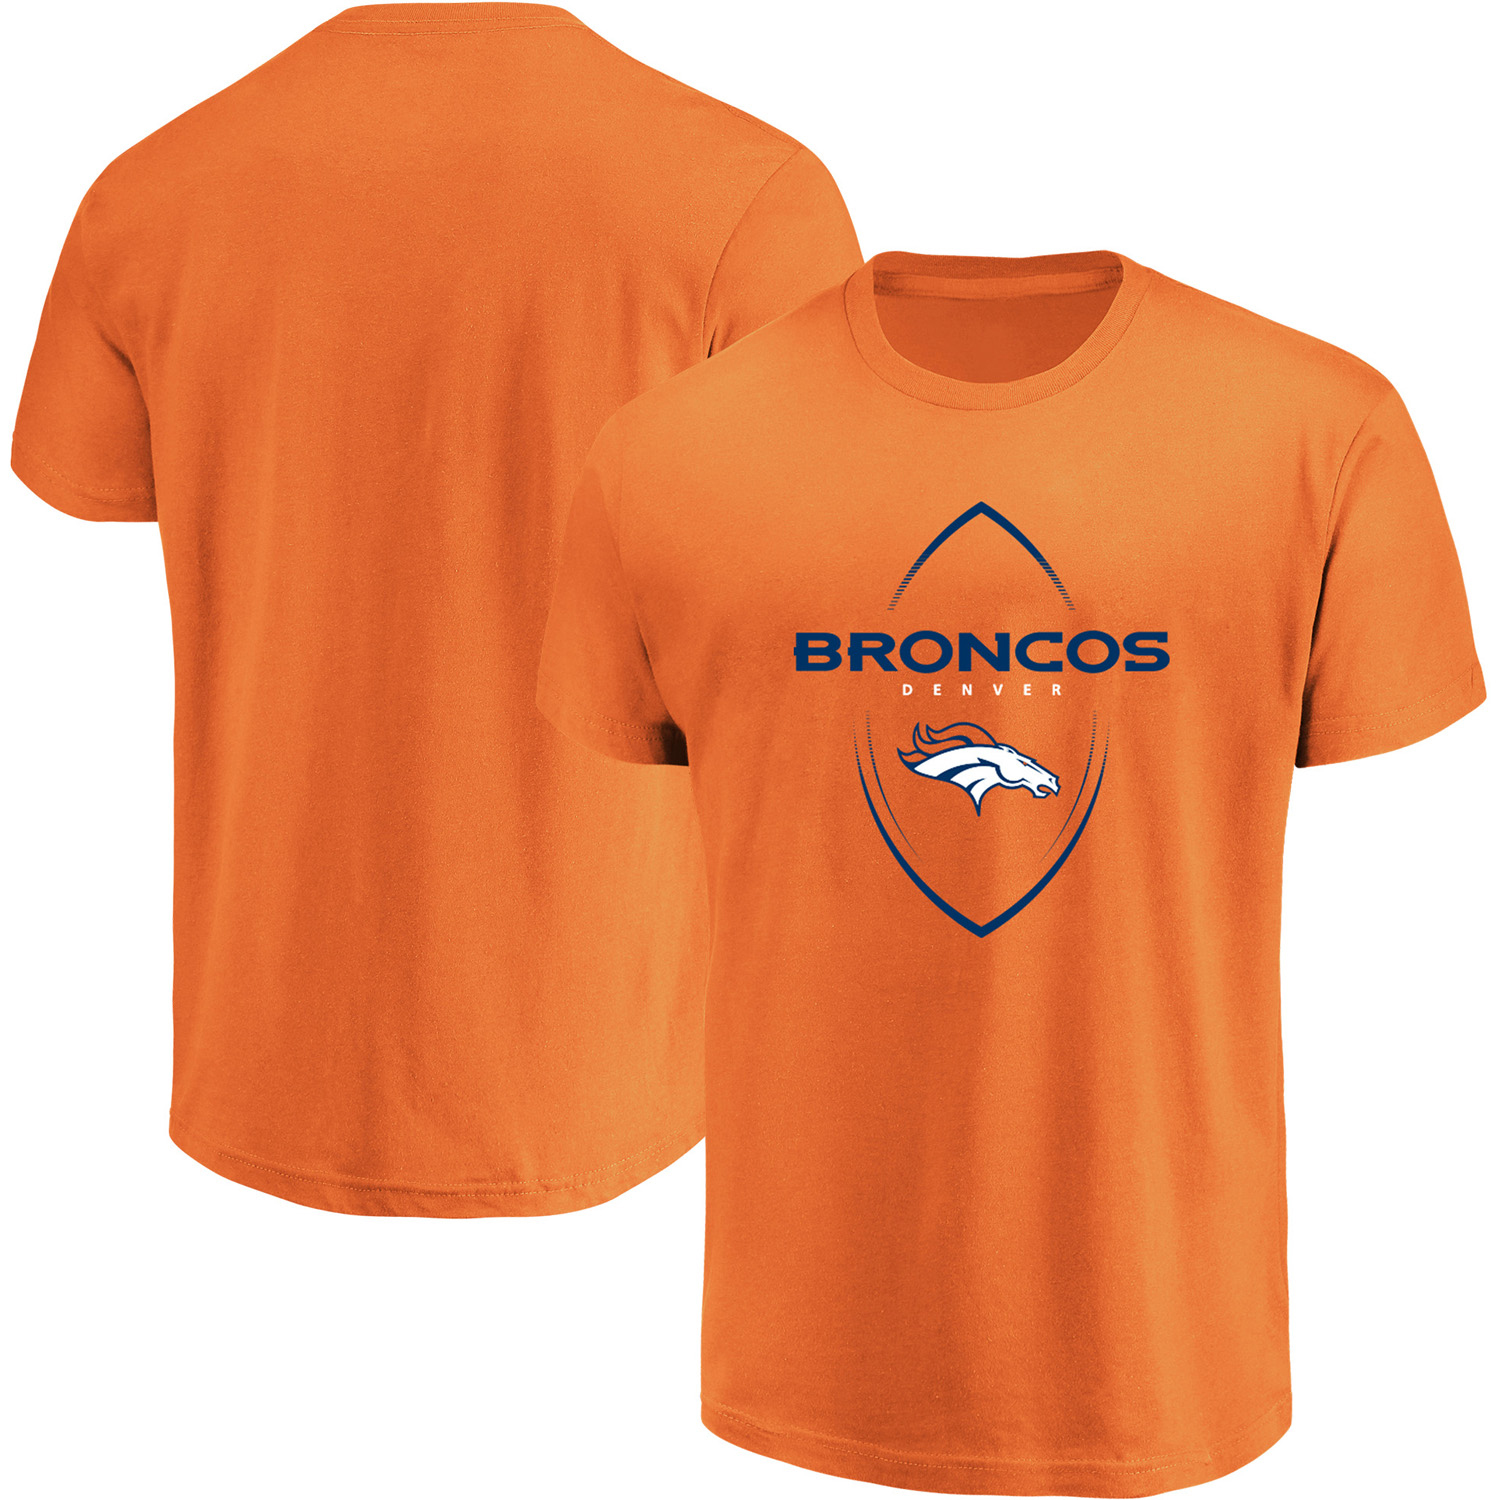 Denver Broncos Majestic Maximized Crew Neck T-Shirt - Orange